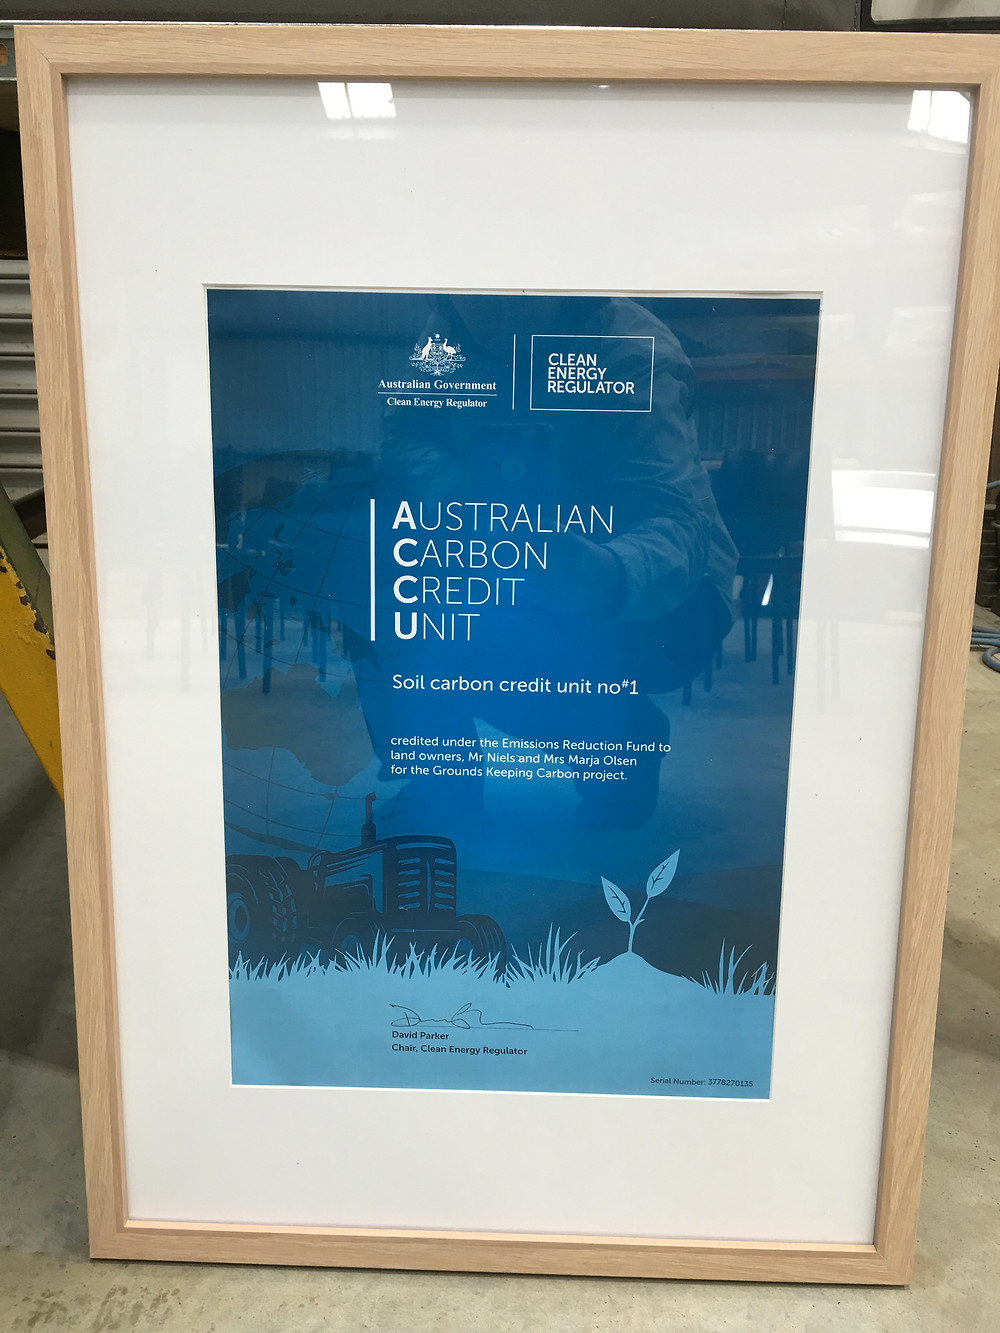 First Carbon Credits in the World that go toward Australia's Emissions Reduction Targets of the Paris Agreement